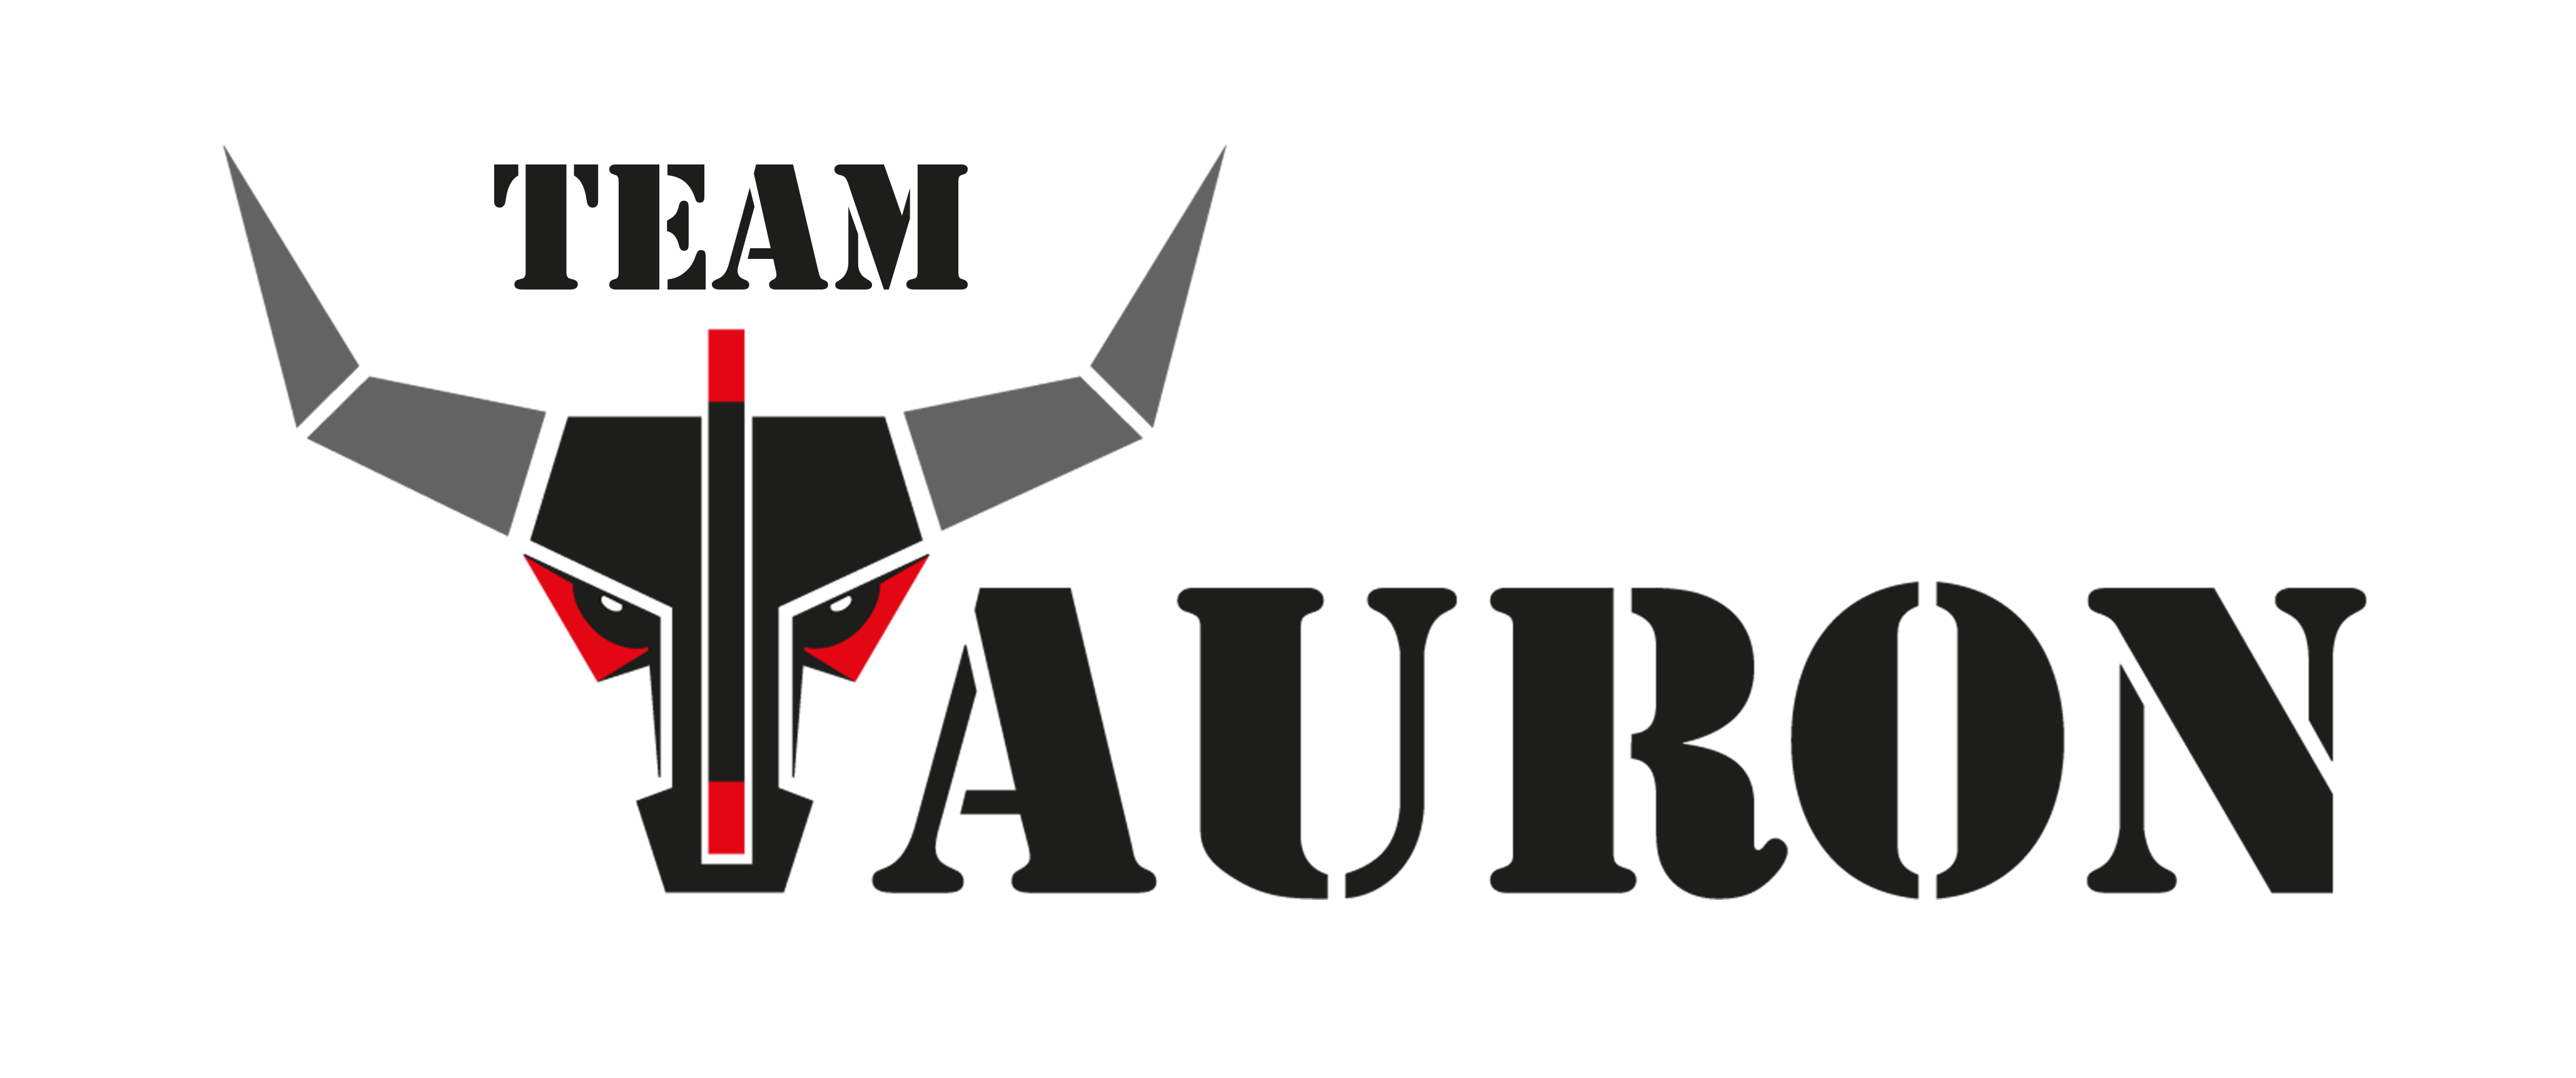 Team Tauron logo